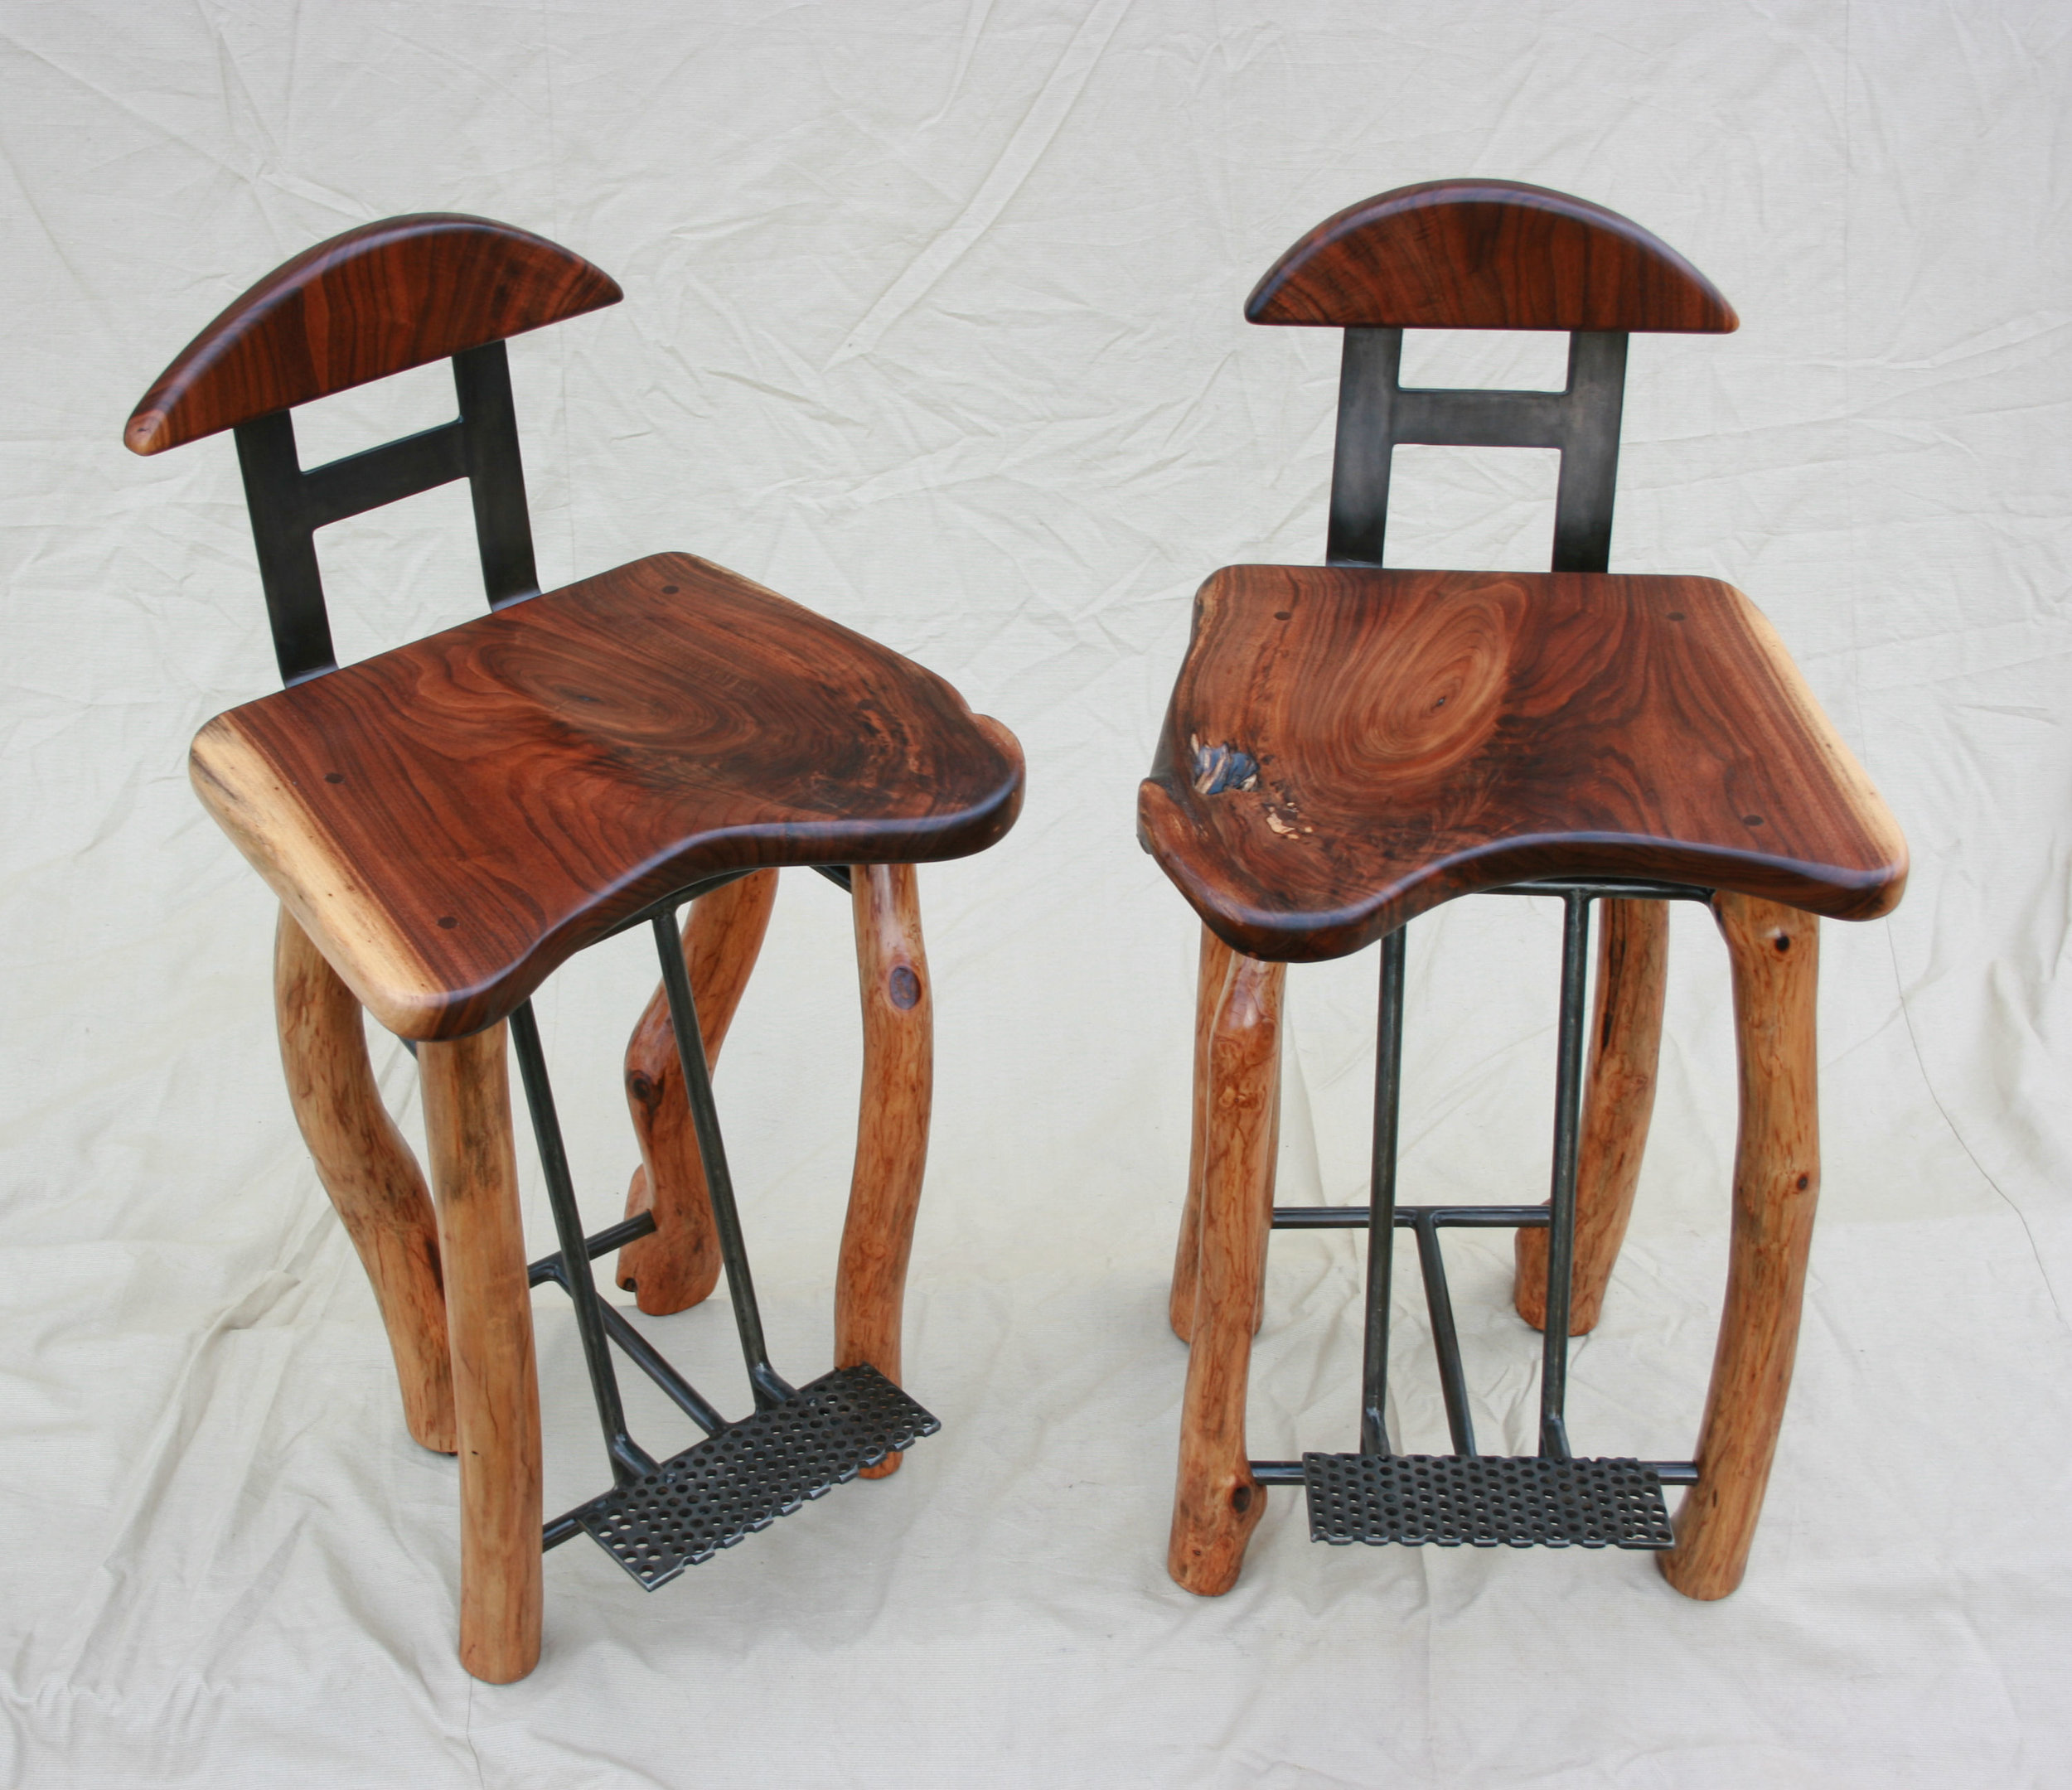 SOLD- Handmade Stools- walnut, cherry and steel